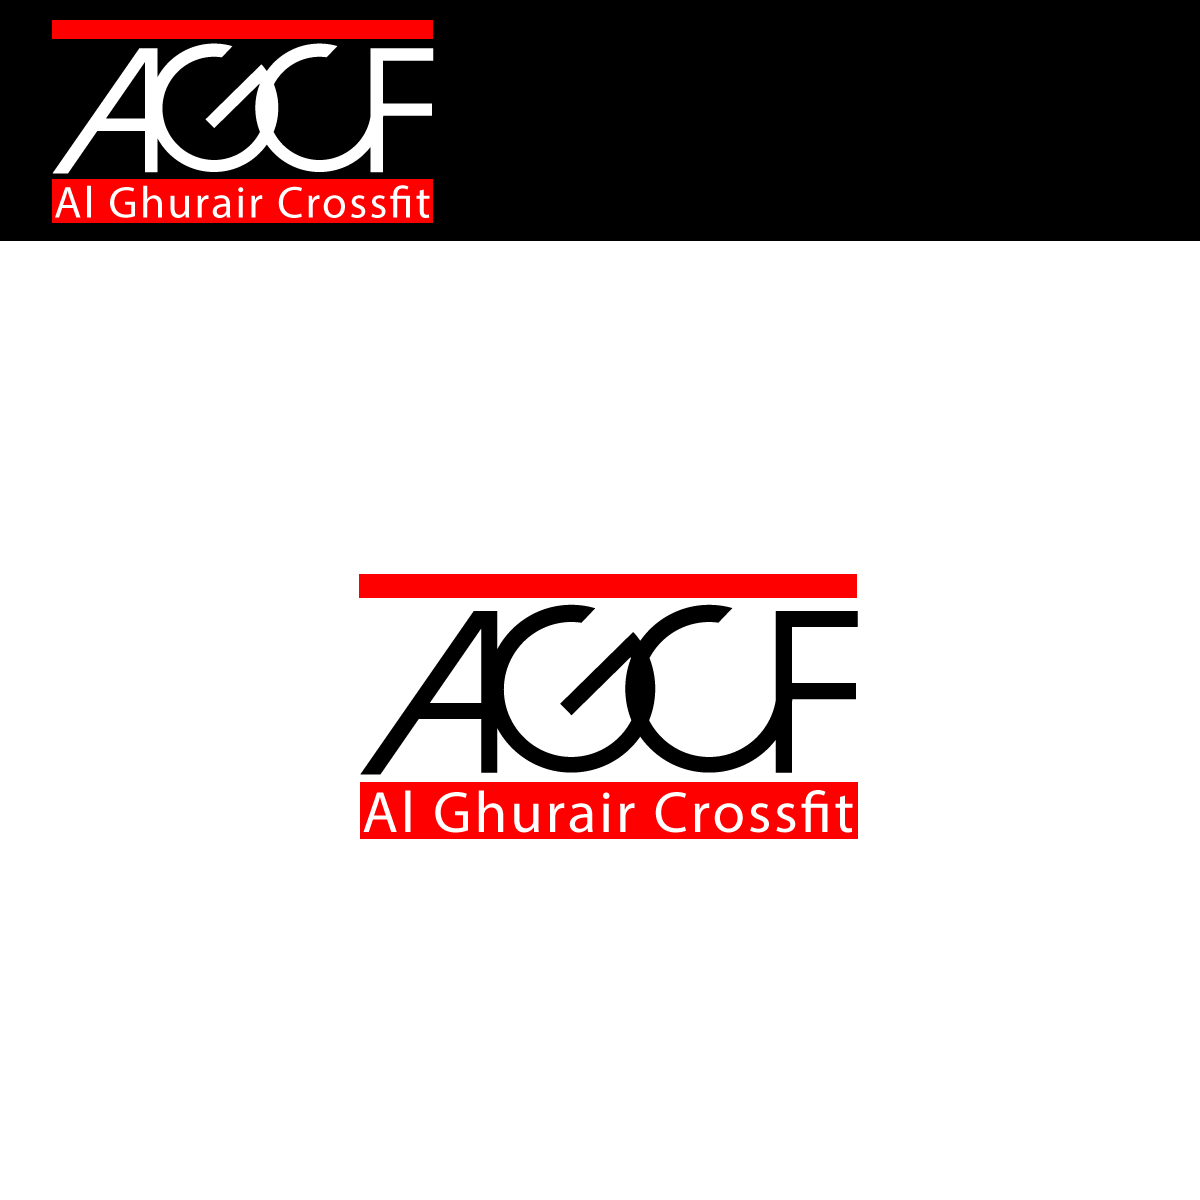 Logo Design by rockin - Entry No. 56 in the Logo Design Contest Imaginative Logo Design for AGCF.